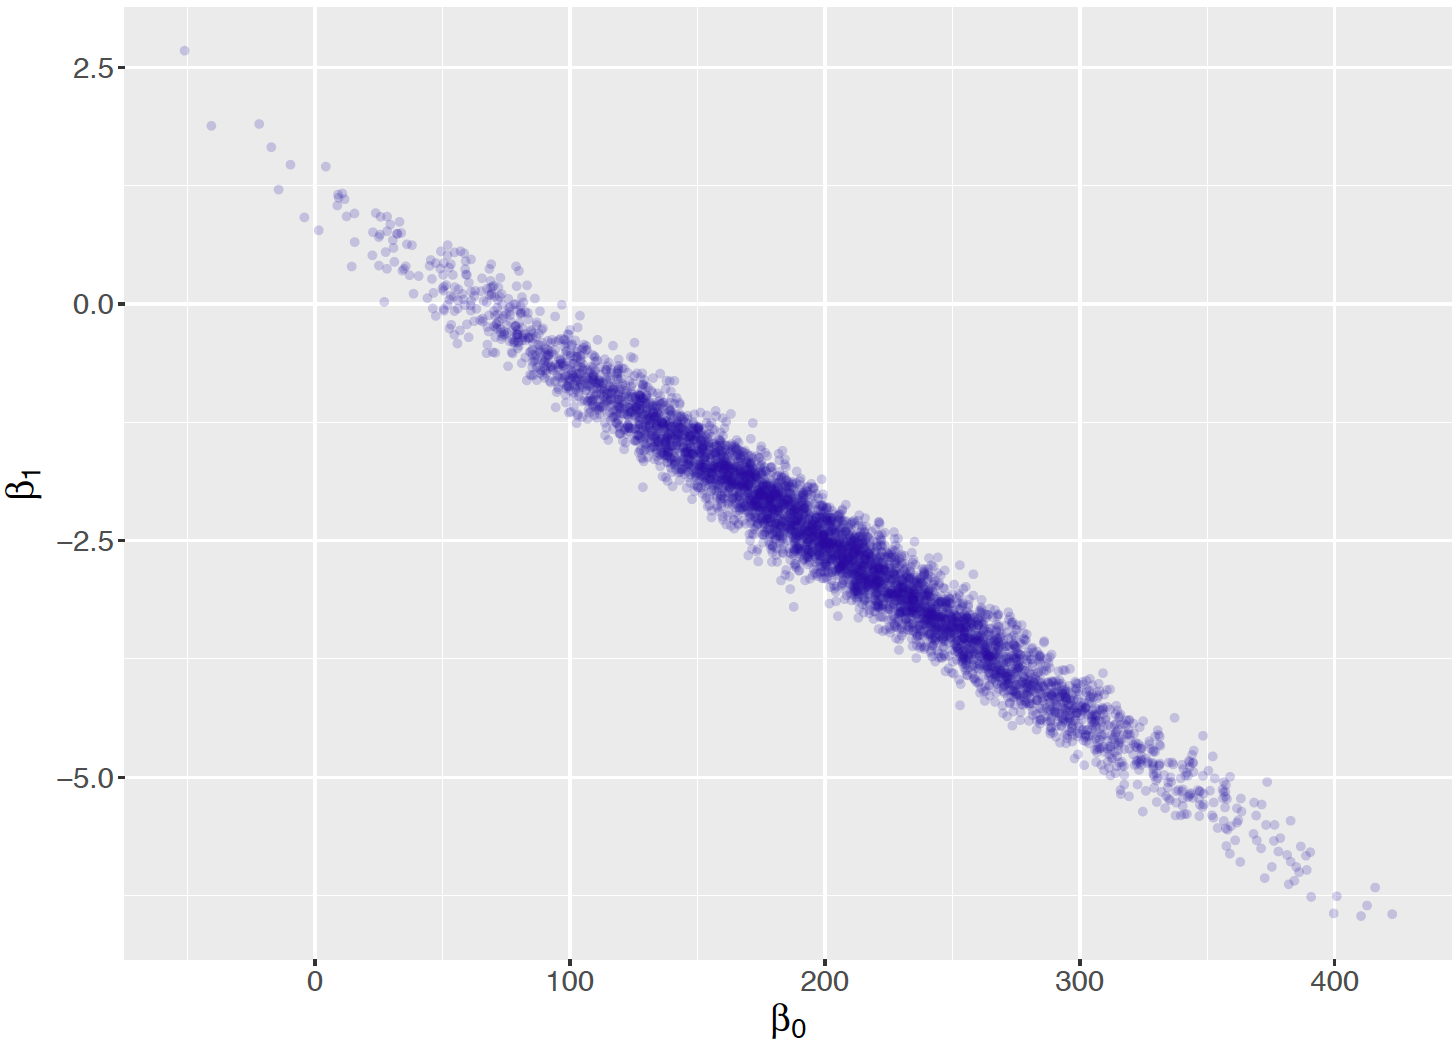 Scatterplot of simulated draws of the regression parameters from the conditional means prior.